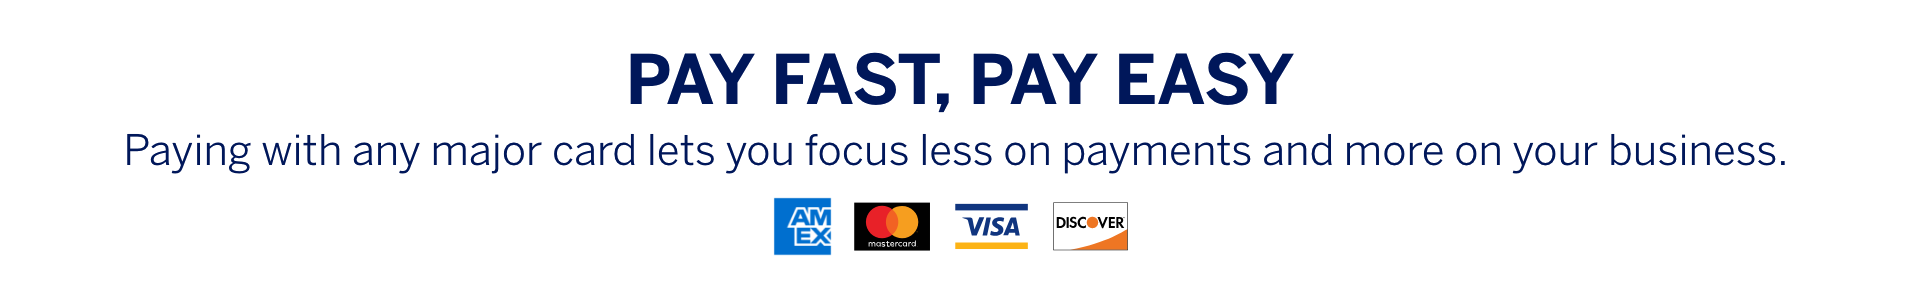 Pay Fast, Pay Easy